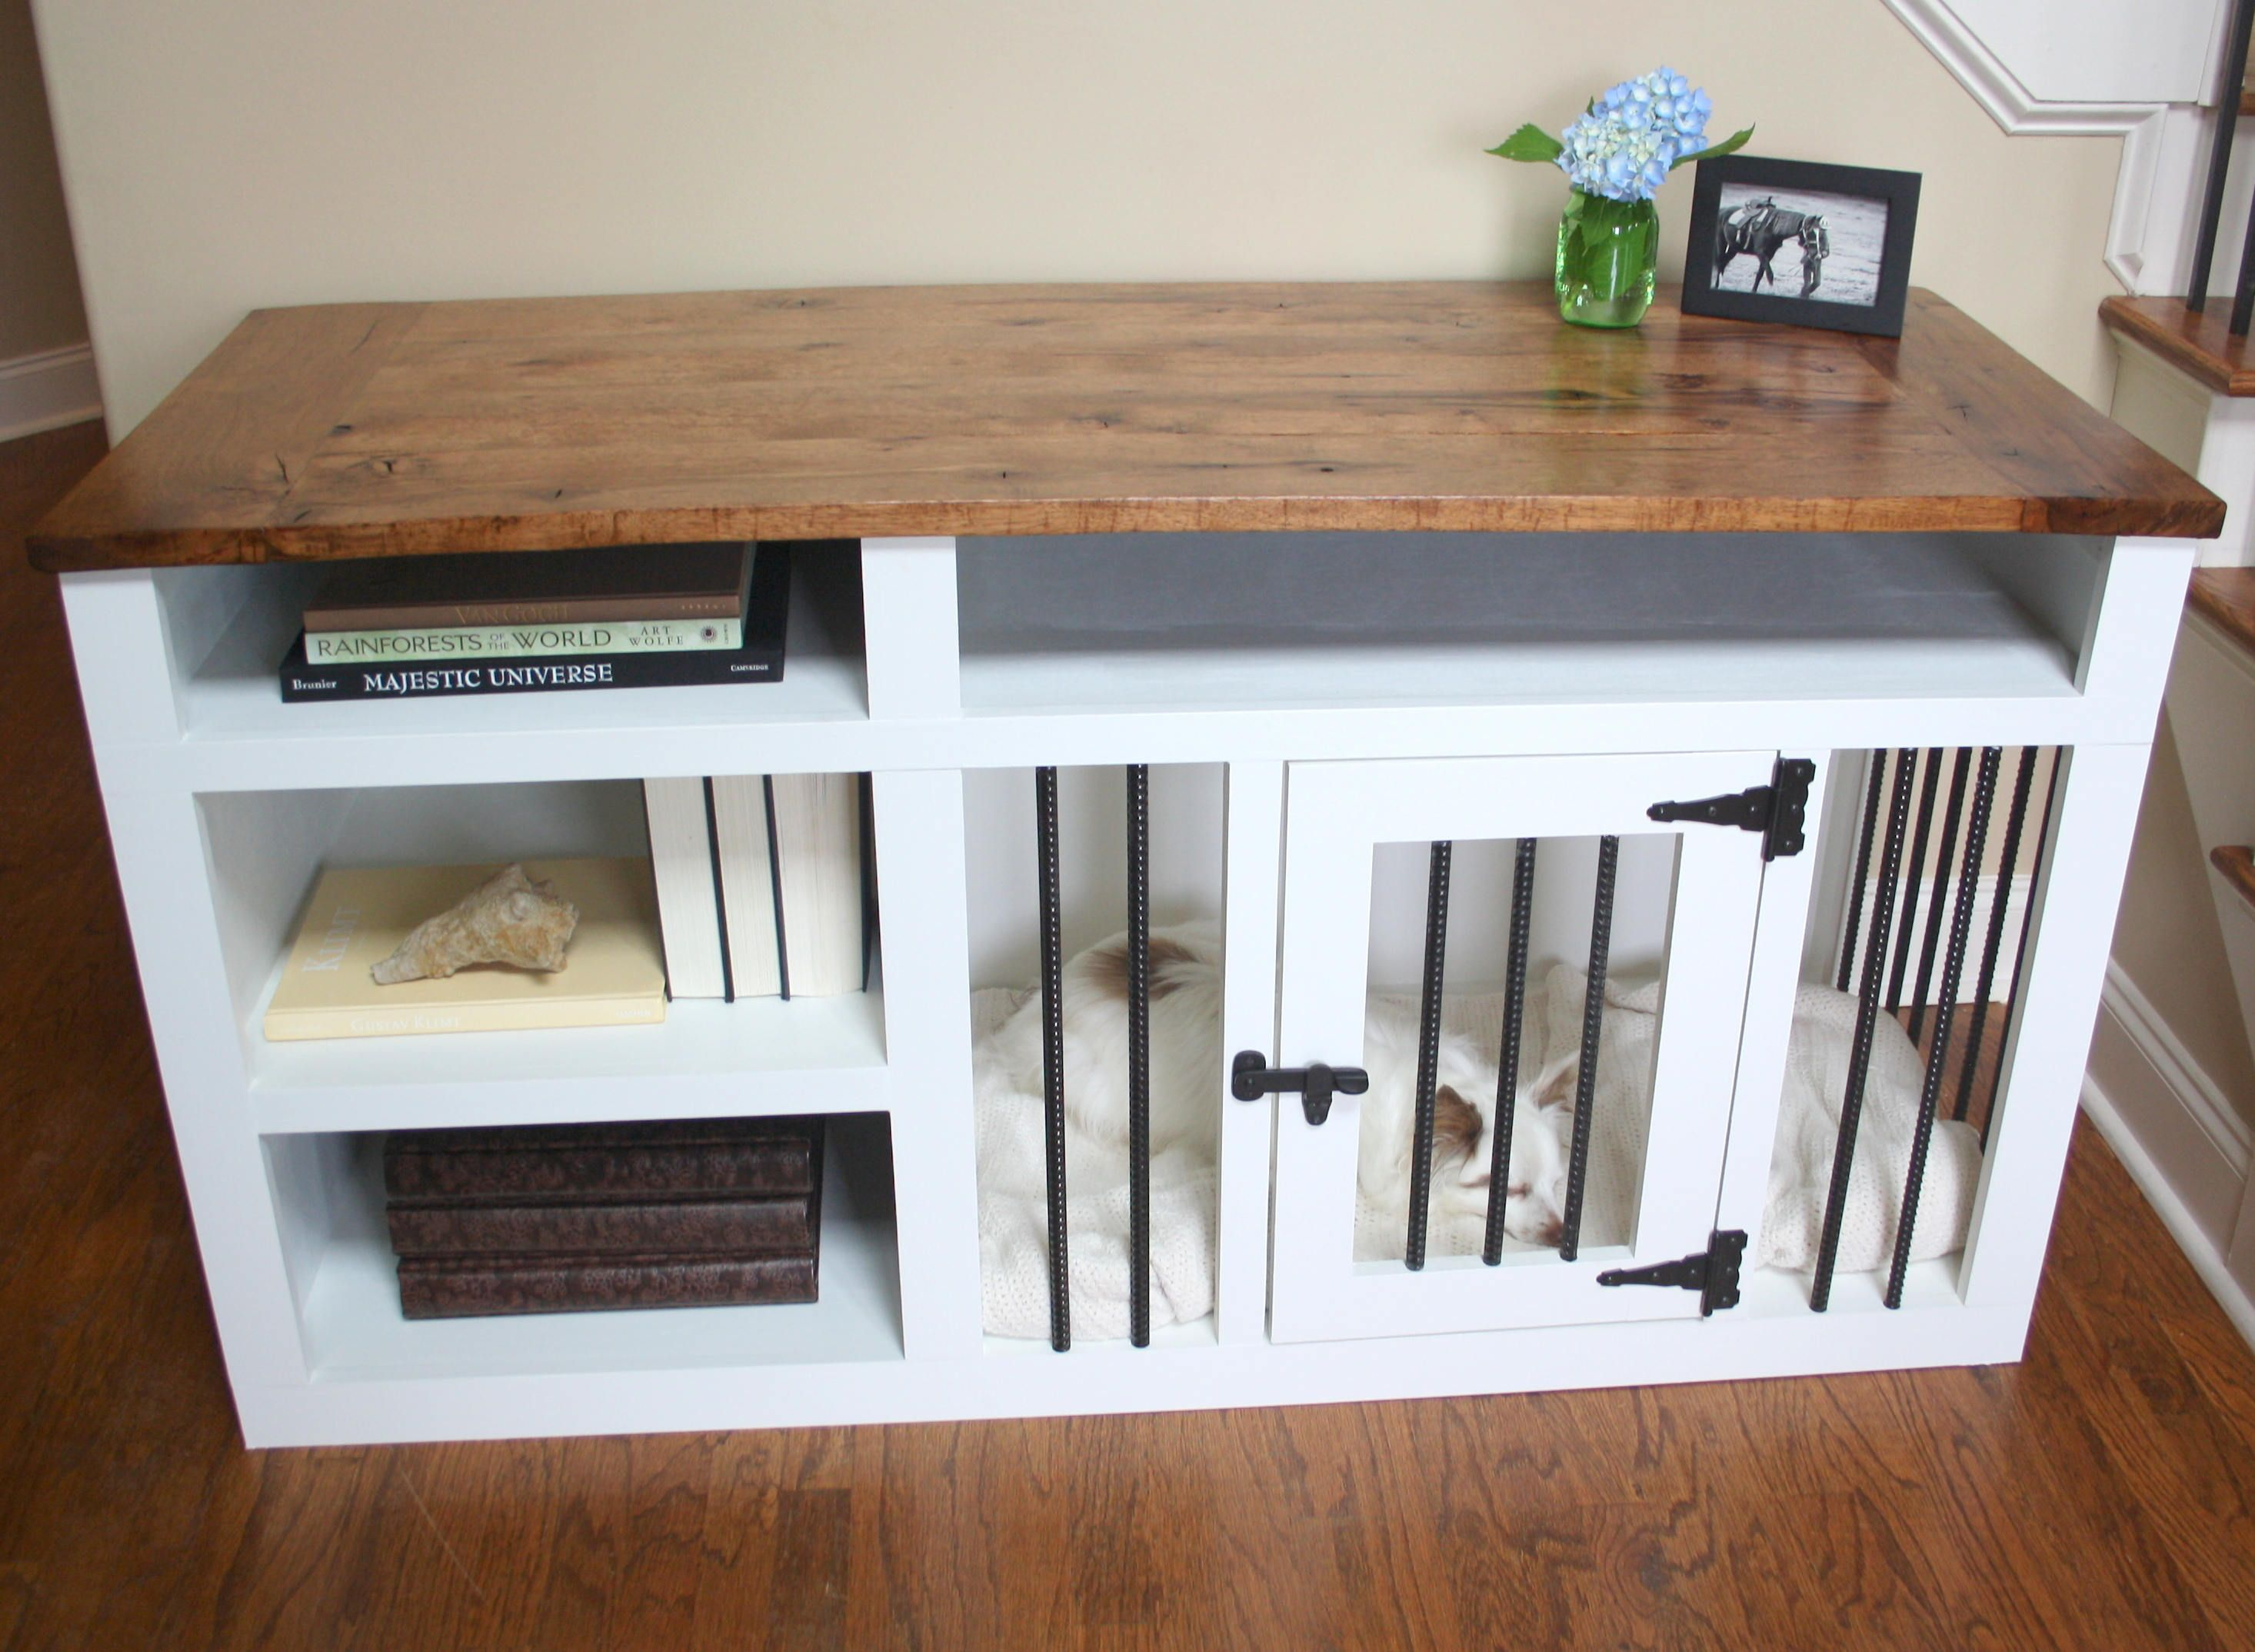 Made To Order Custom Built Dog Crate Furniture Kennel Solid Wood With Shelves By Curlywillowgallery On Etsy